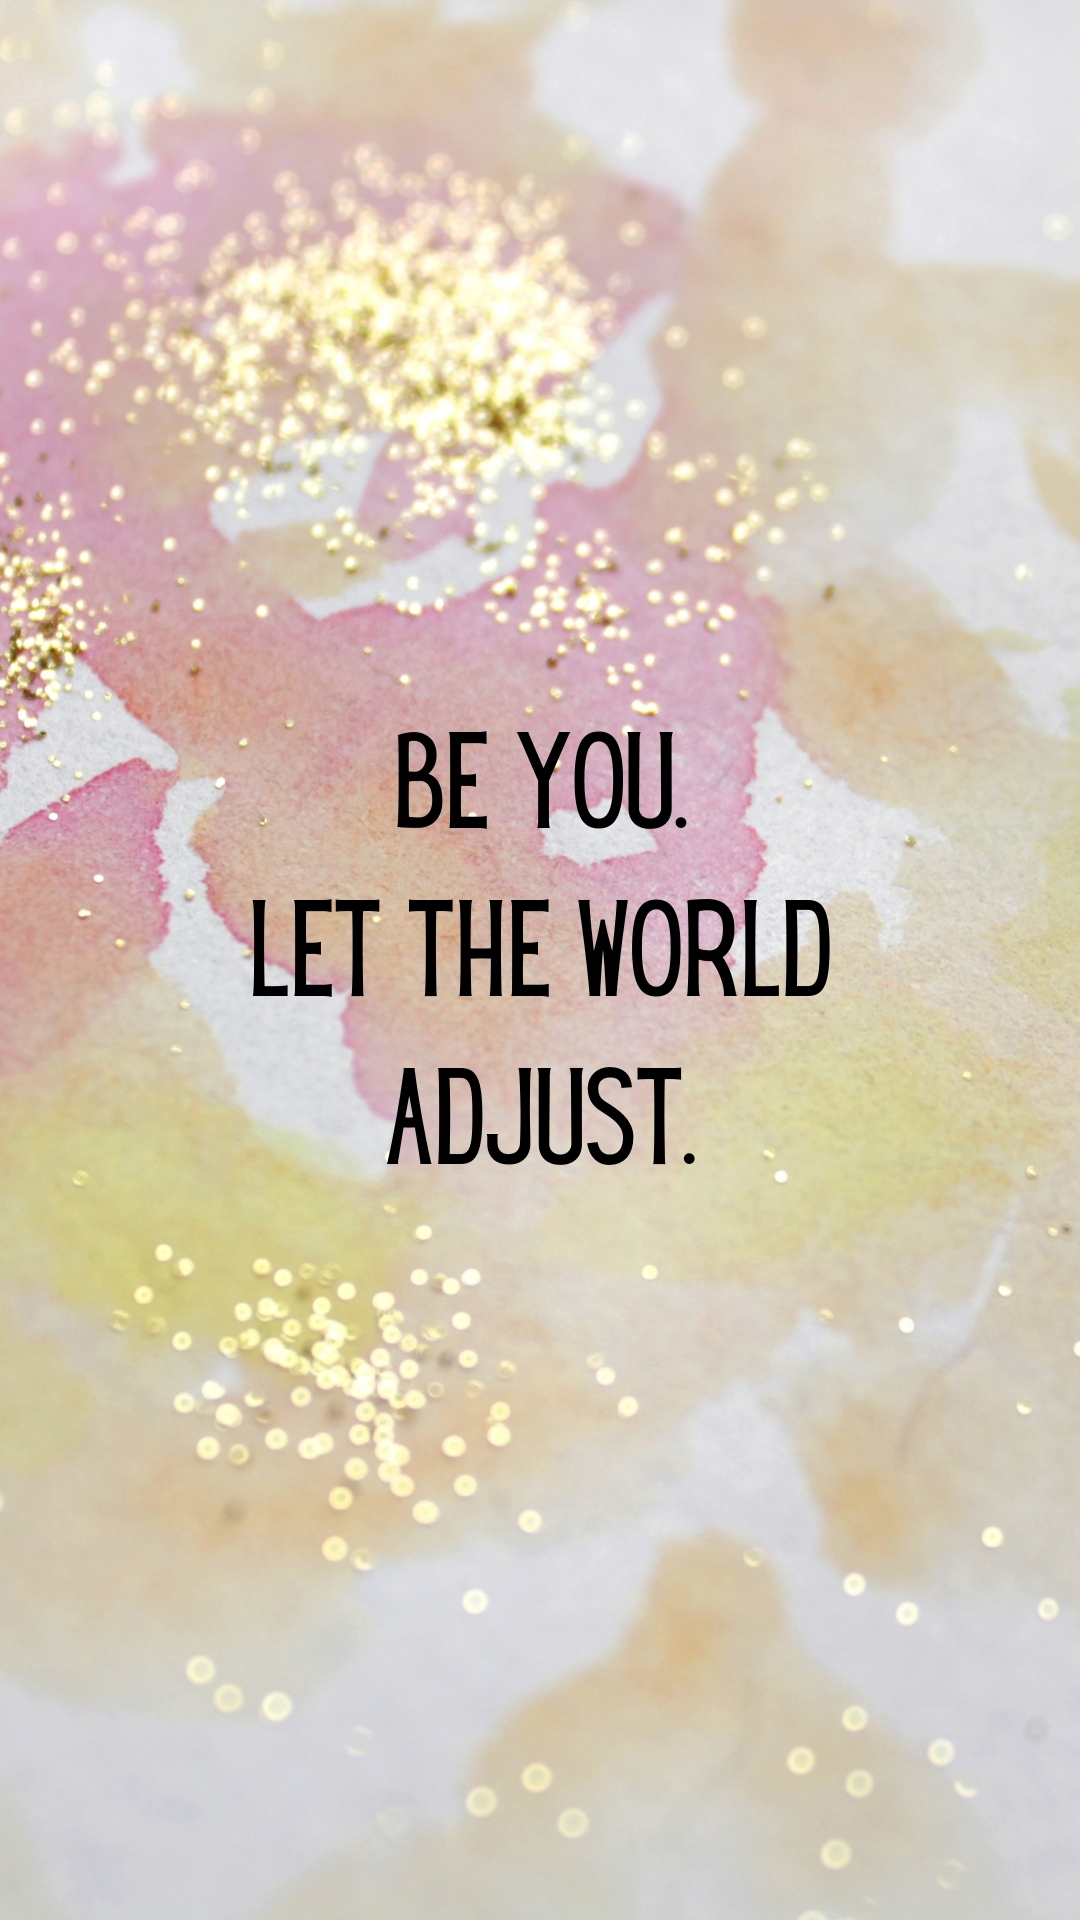 Motivational And Inspirational Wallpapers For iPhone: Be You, Let The World Adjust